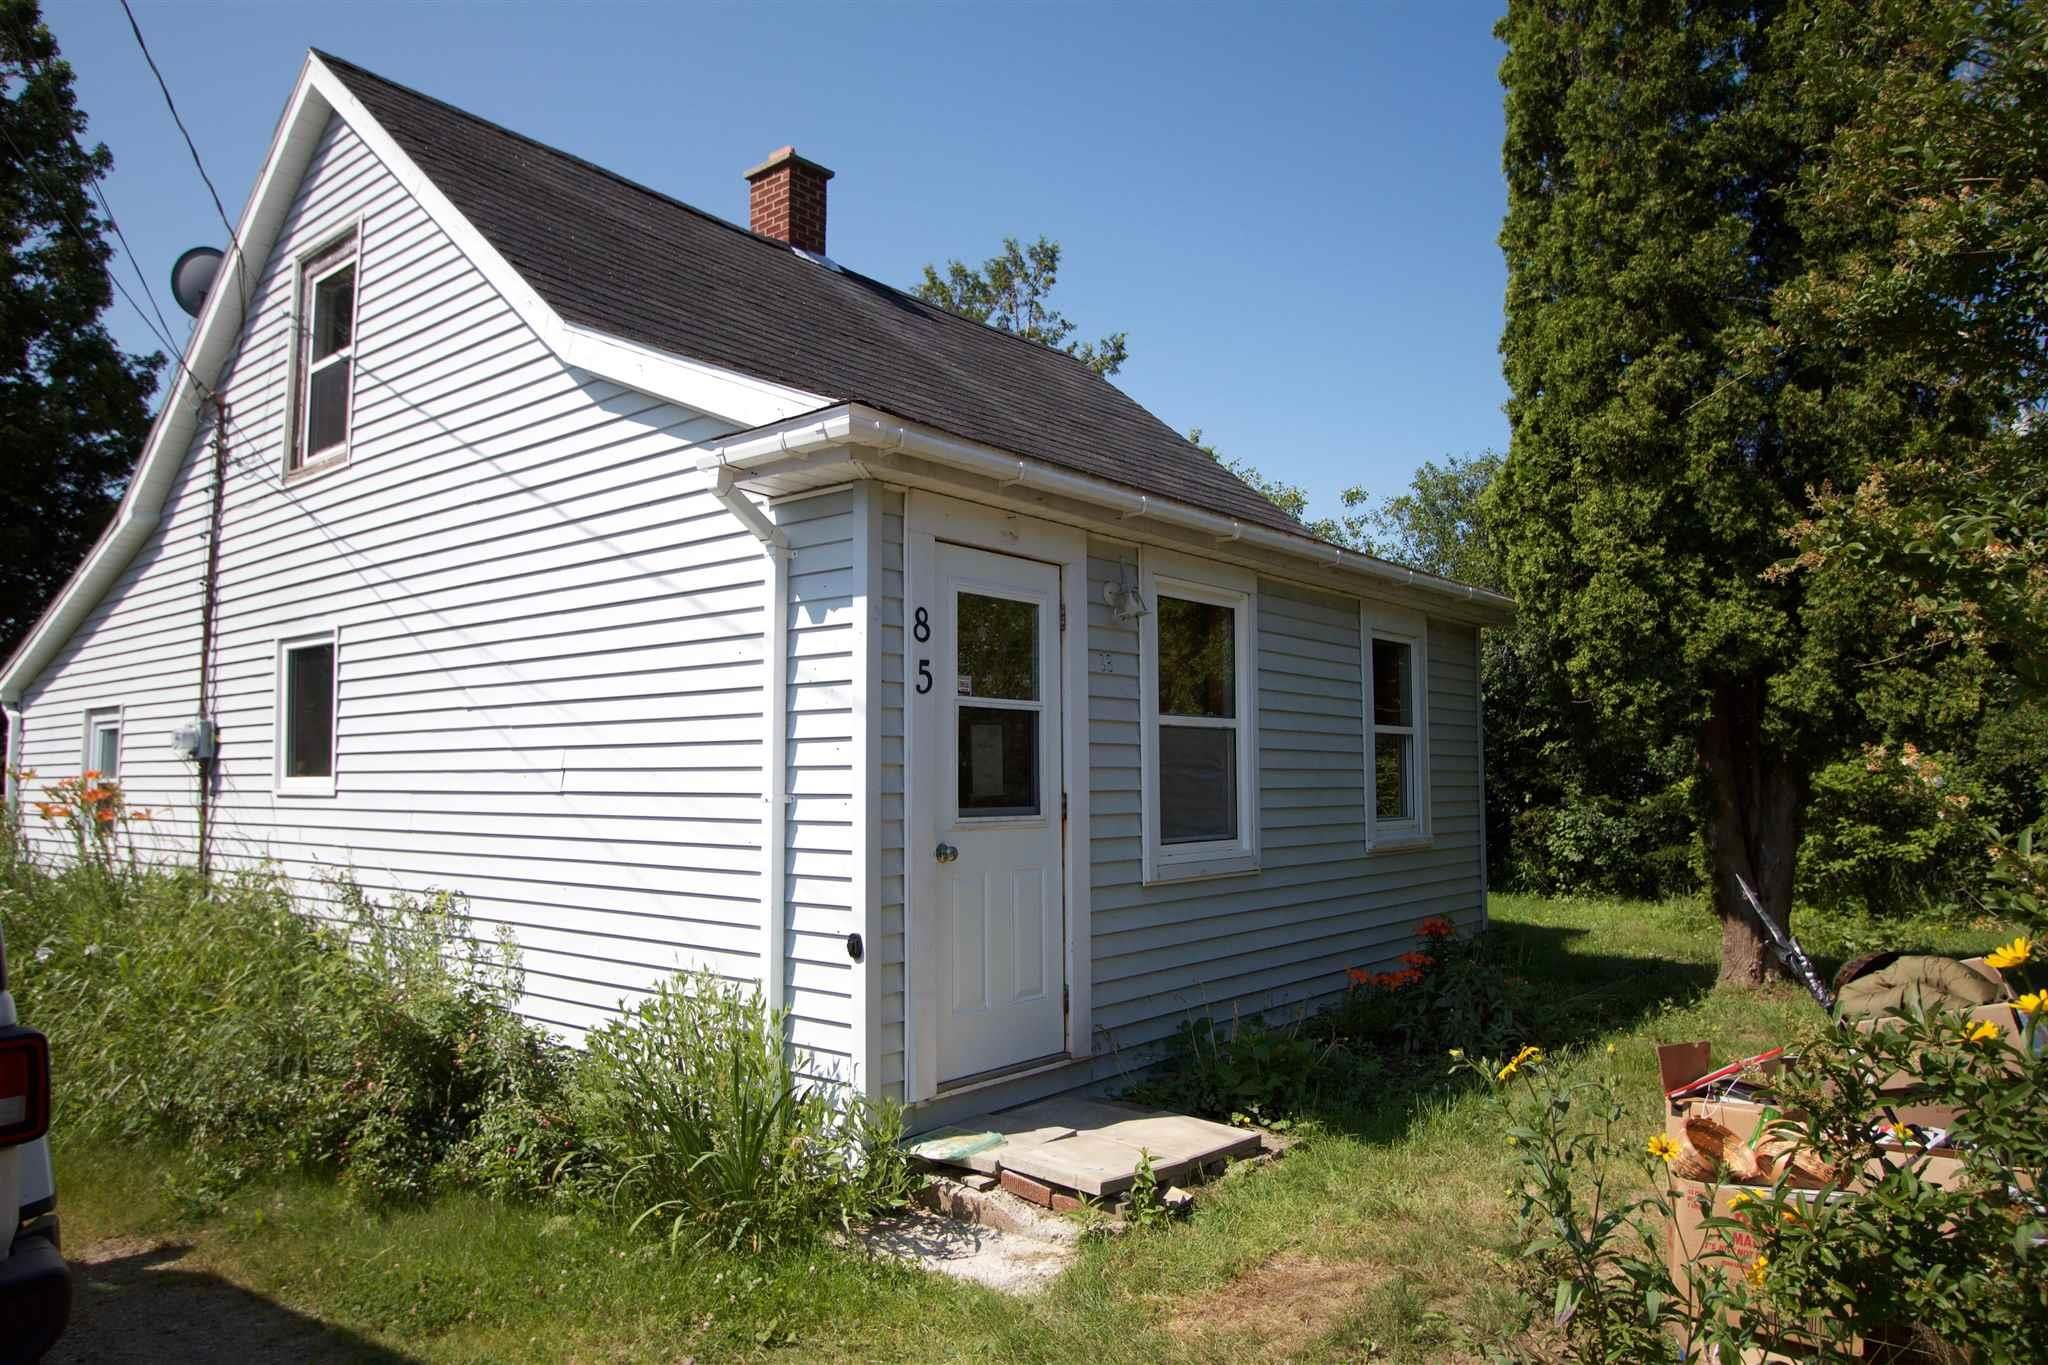 Main Photo: 85 CHURCH Street in Digby: 401-Digby County Residential for sale (Annapolis Valley)  : MLS®# 202121482